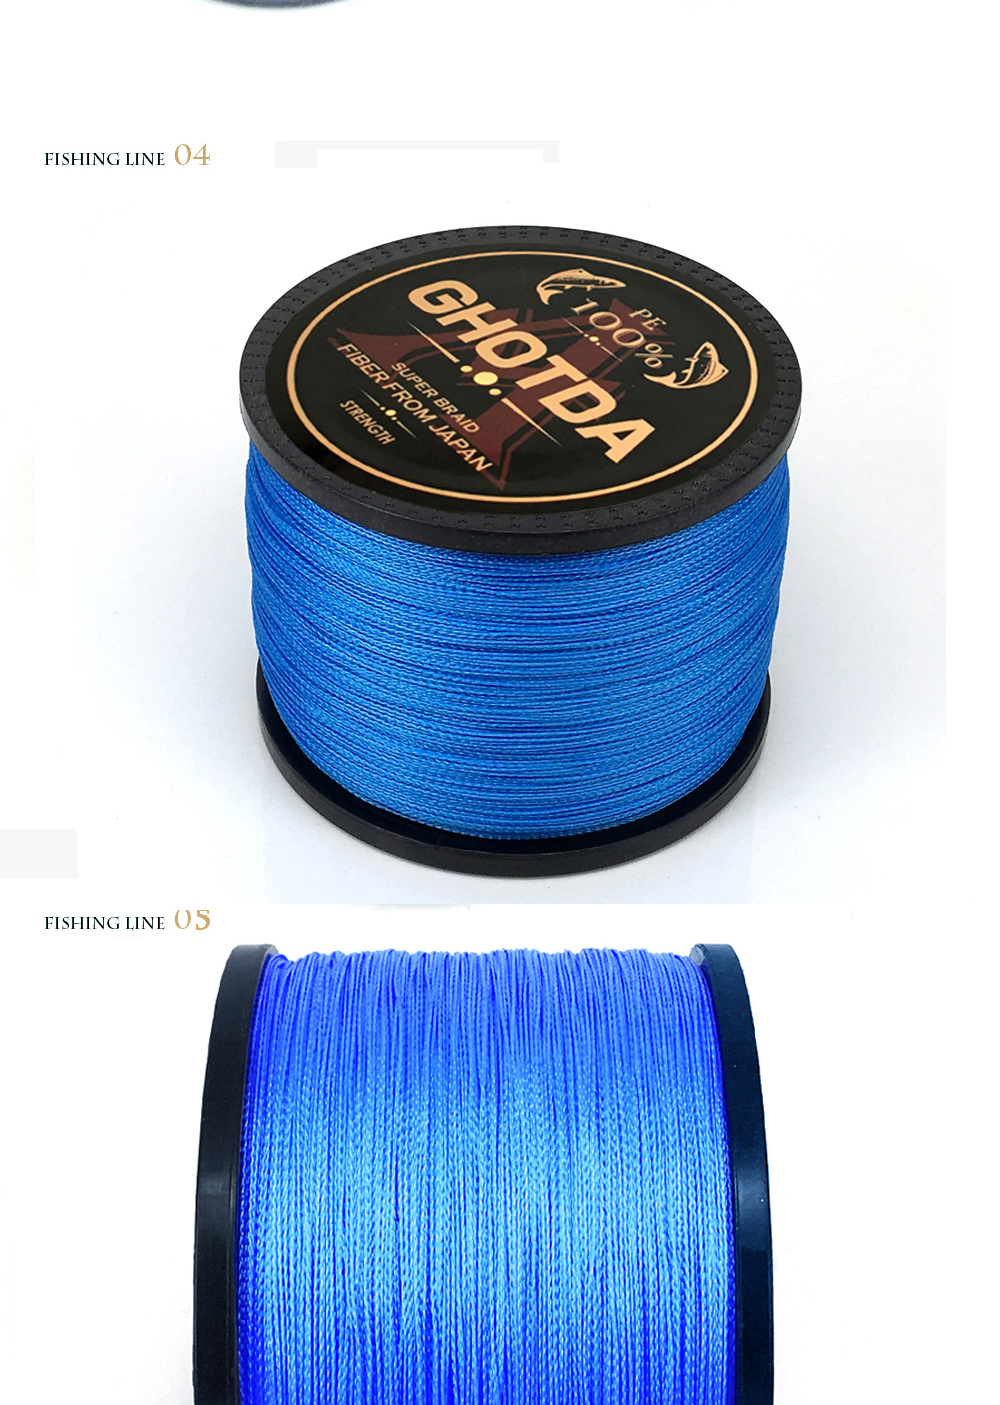 GHOTDA  Blue 4 Strand Braided Fishing Line for Freshwater and Sea Angling